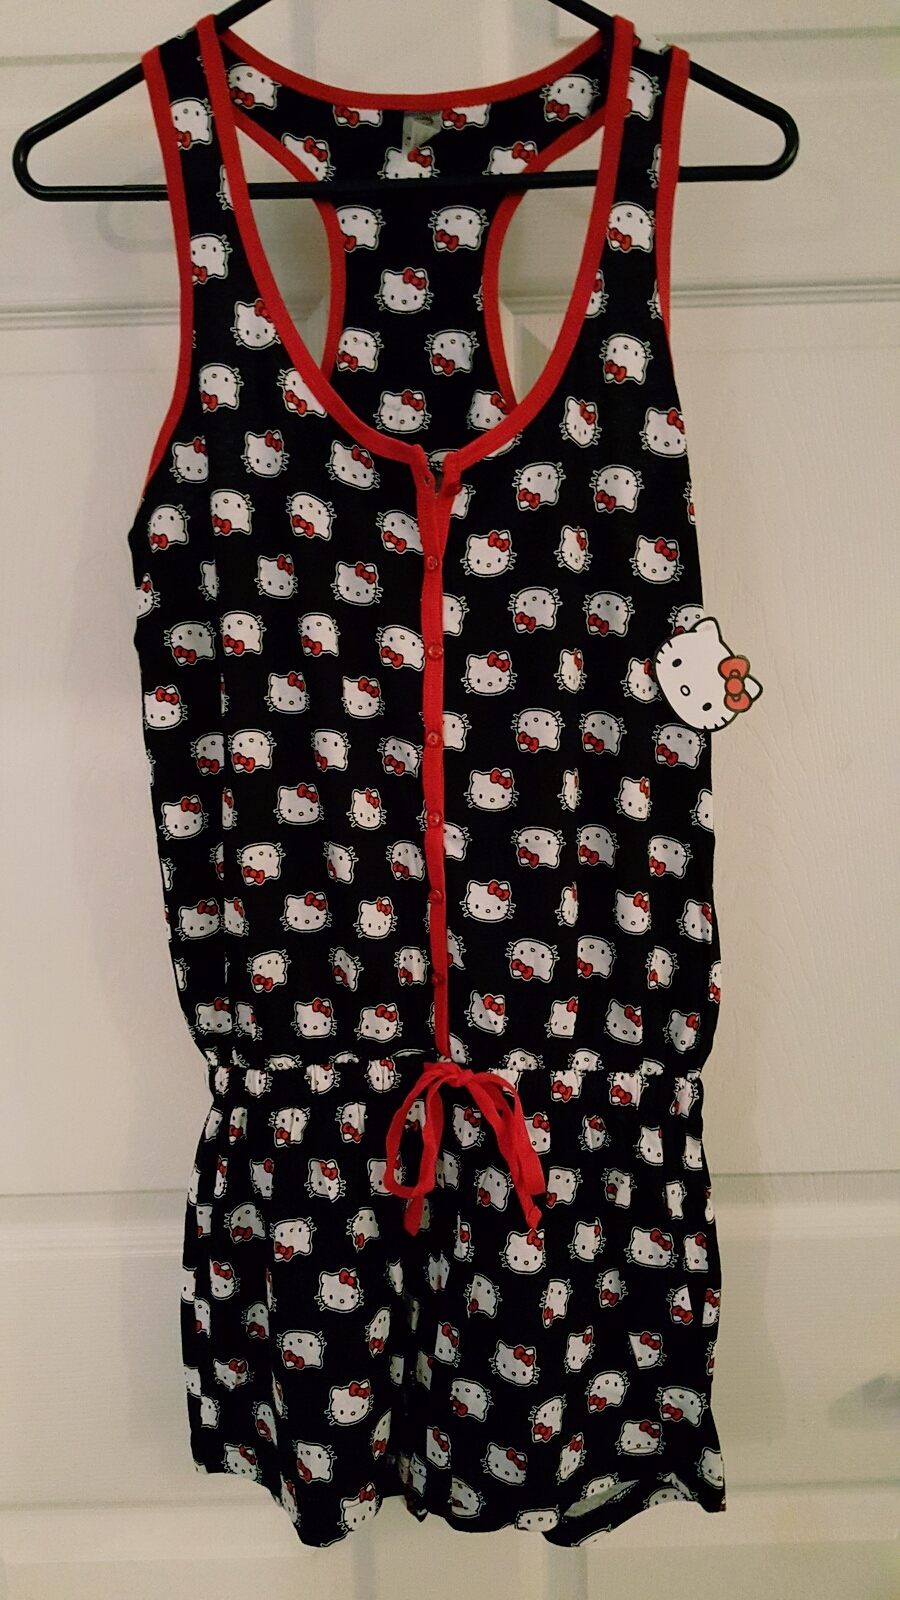 Sanrio Hello Kitty Women's Kitty Print Romper Playsuit Sleepwear Size Large